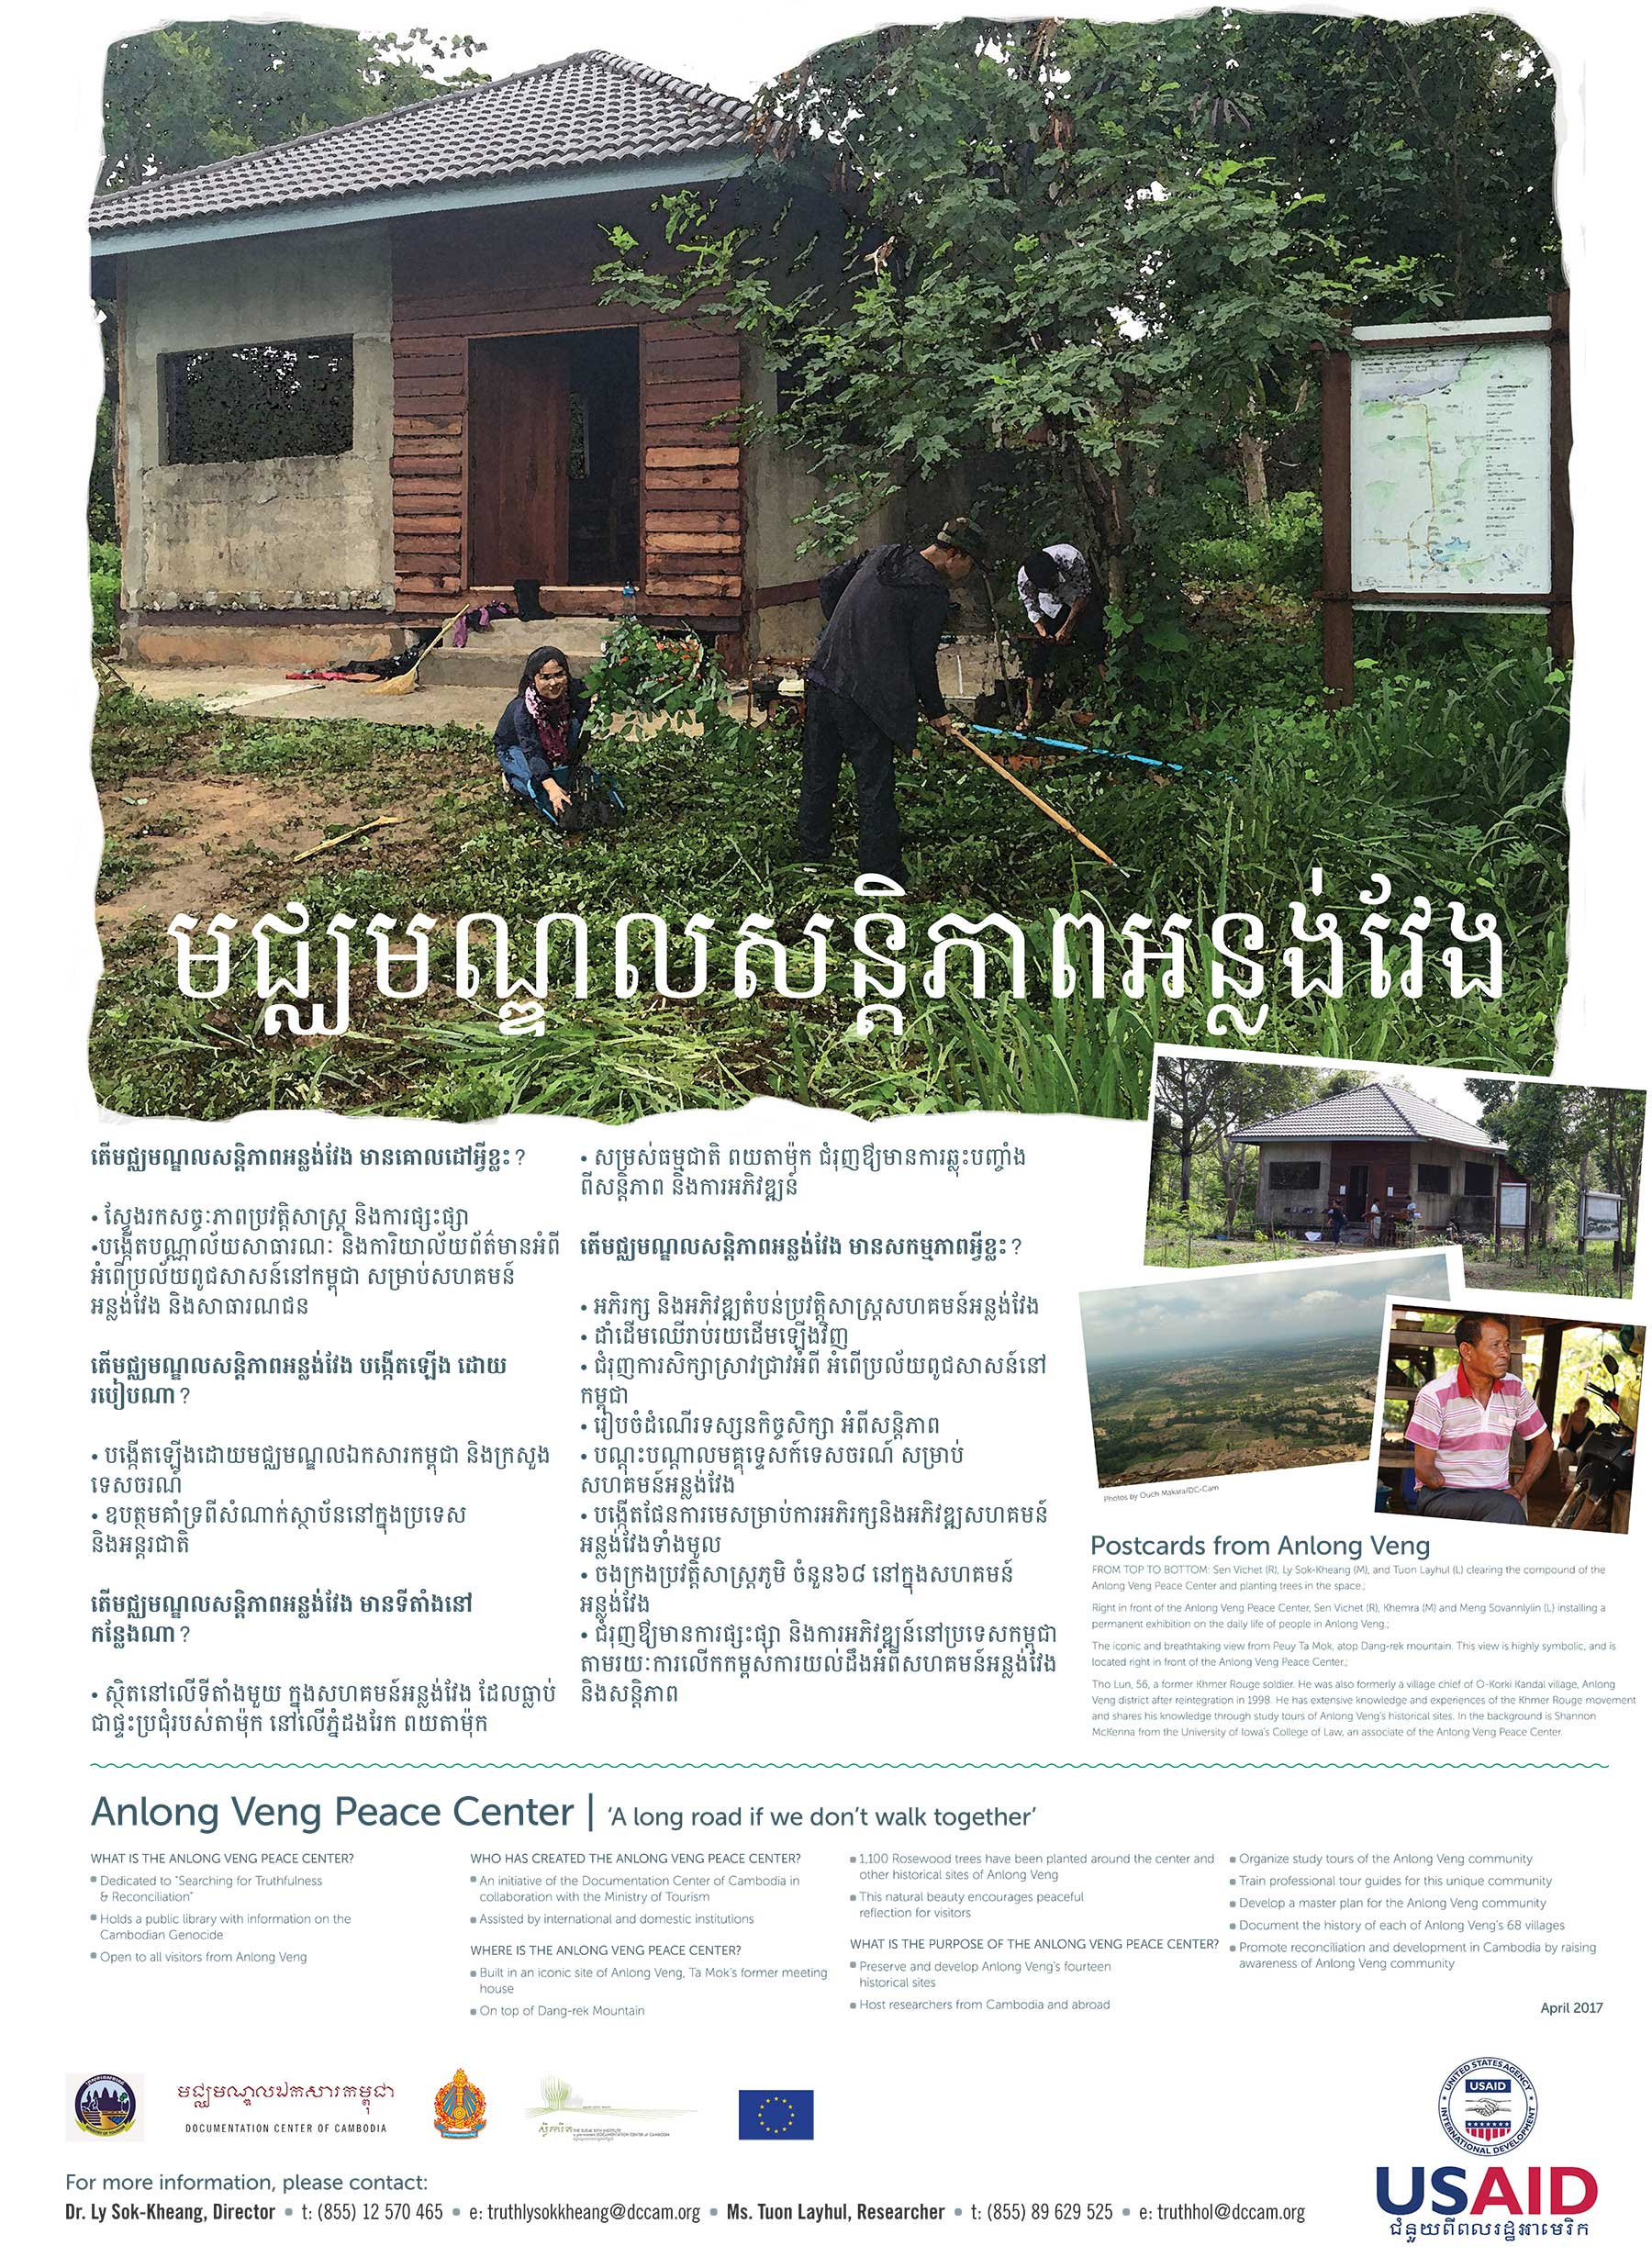 ANLONG VENG PEACE CENTER (2017)